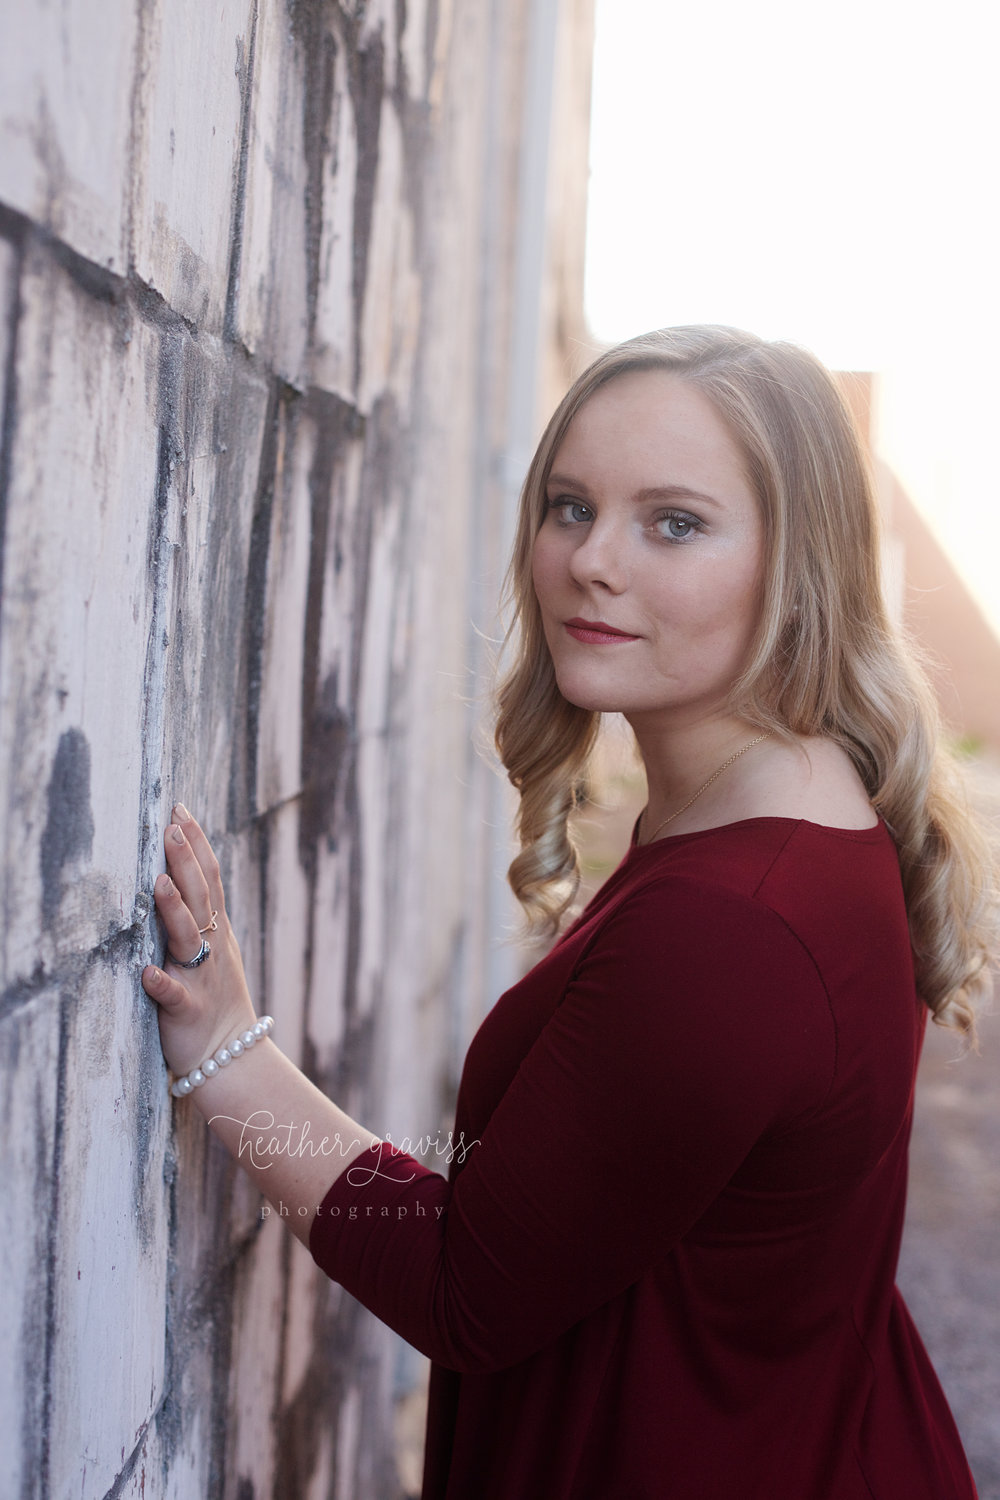 nashville tn senior photography 011.jpg